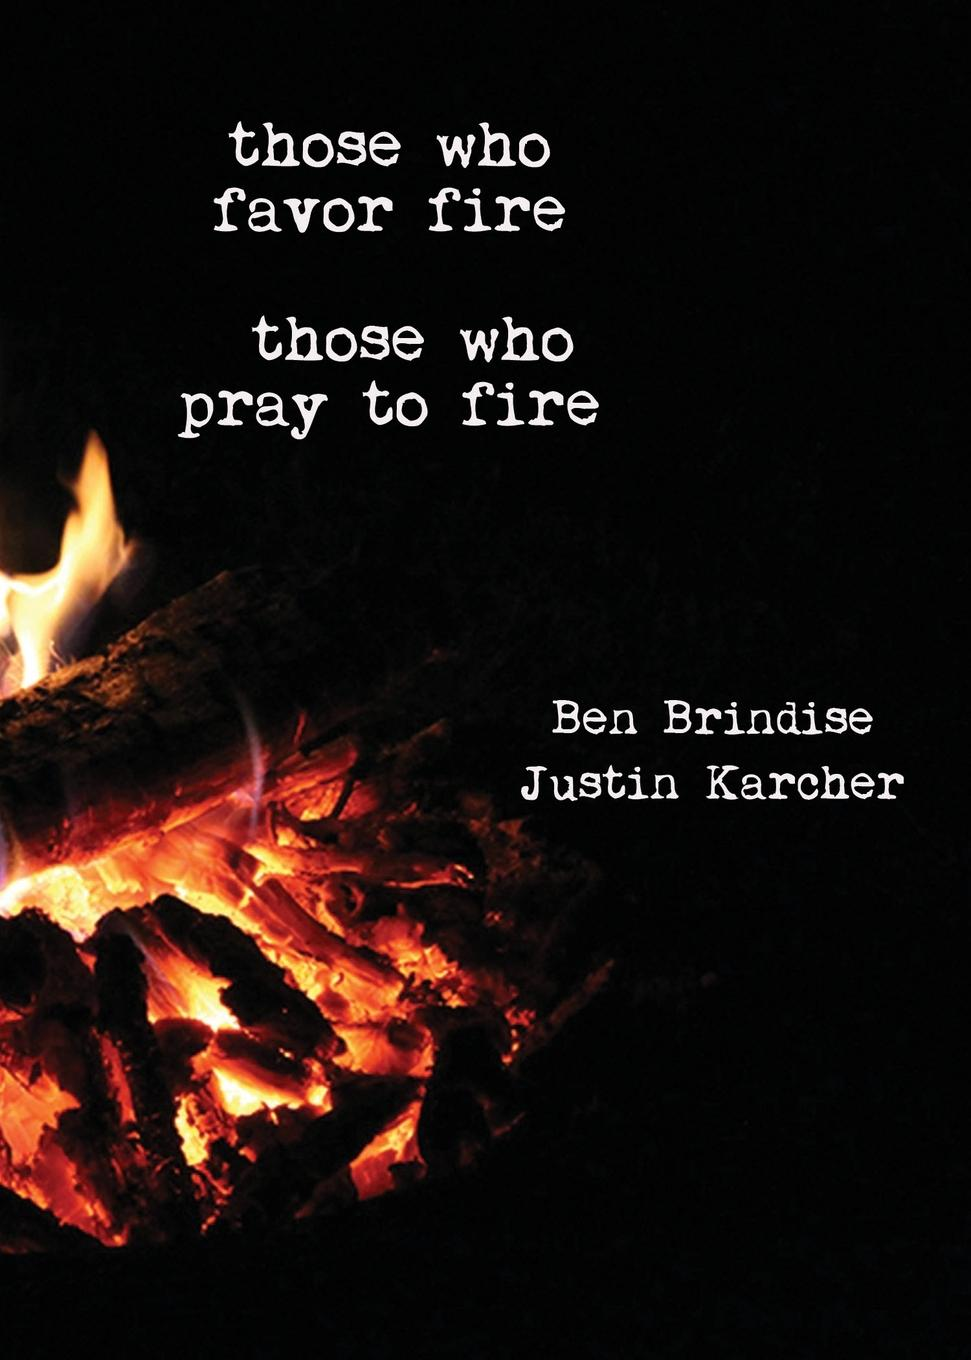 Ben Brindise, Justin Karcher Those Who Favor Fire, Those Who Pray to Fire of a fire on the moon